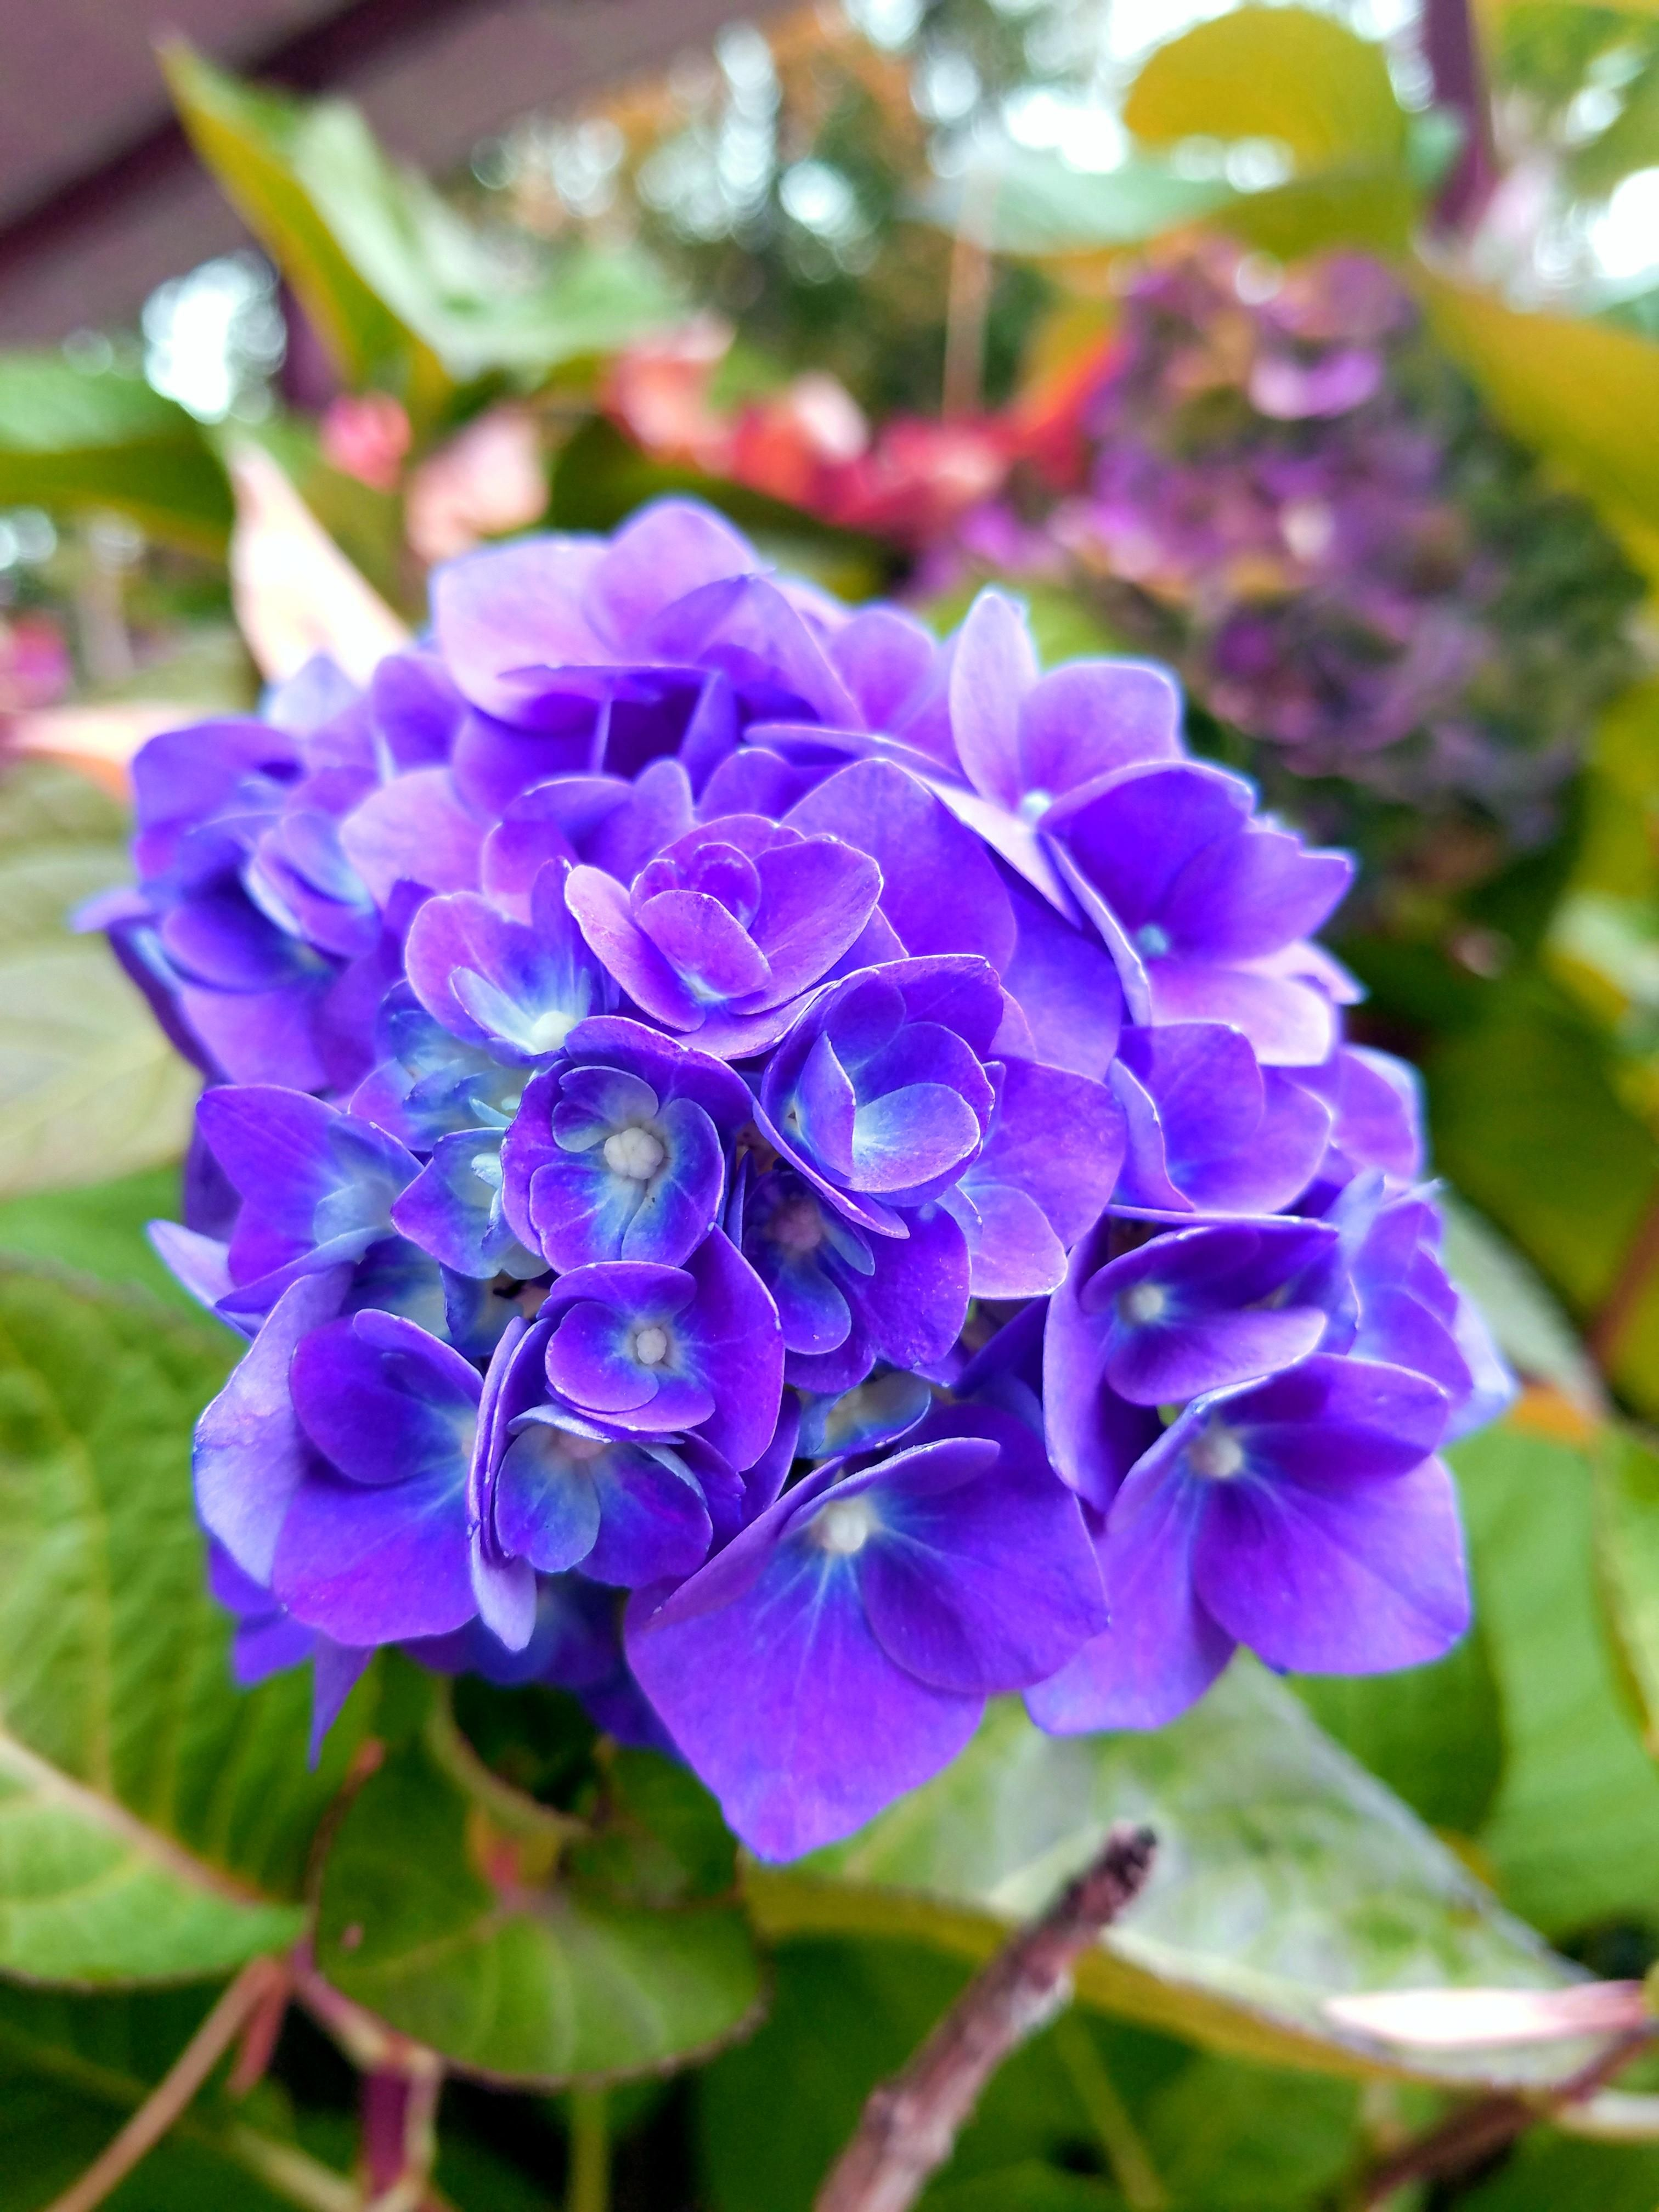 Our hydrangeas usually produce light blue flowers and have mostly our hydrangeas usually produce light blue flowers and have mostly gone dormant but this awesome late izmirmasajfo